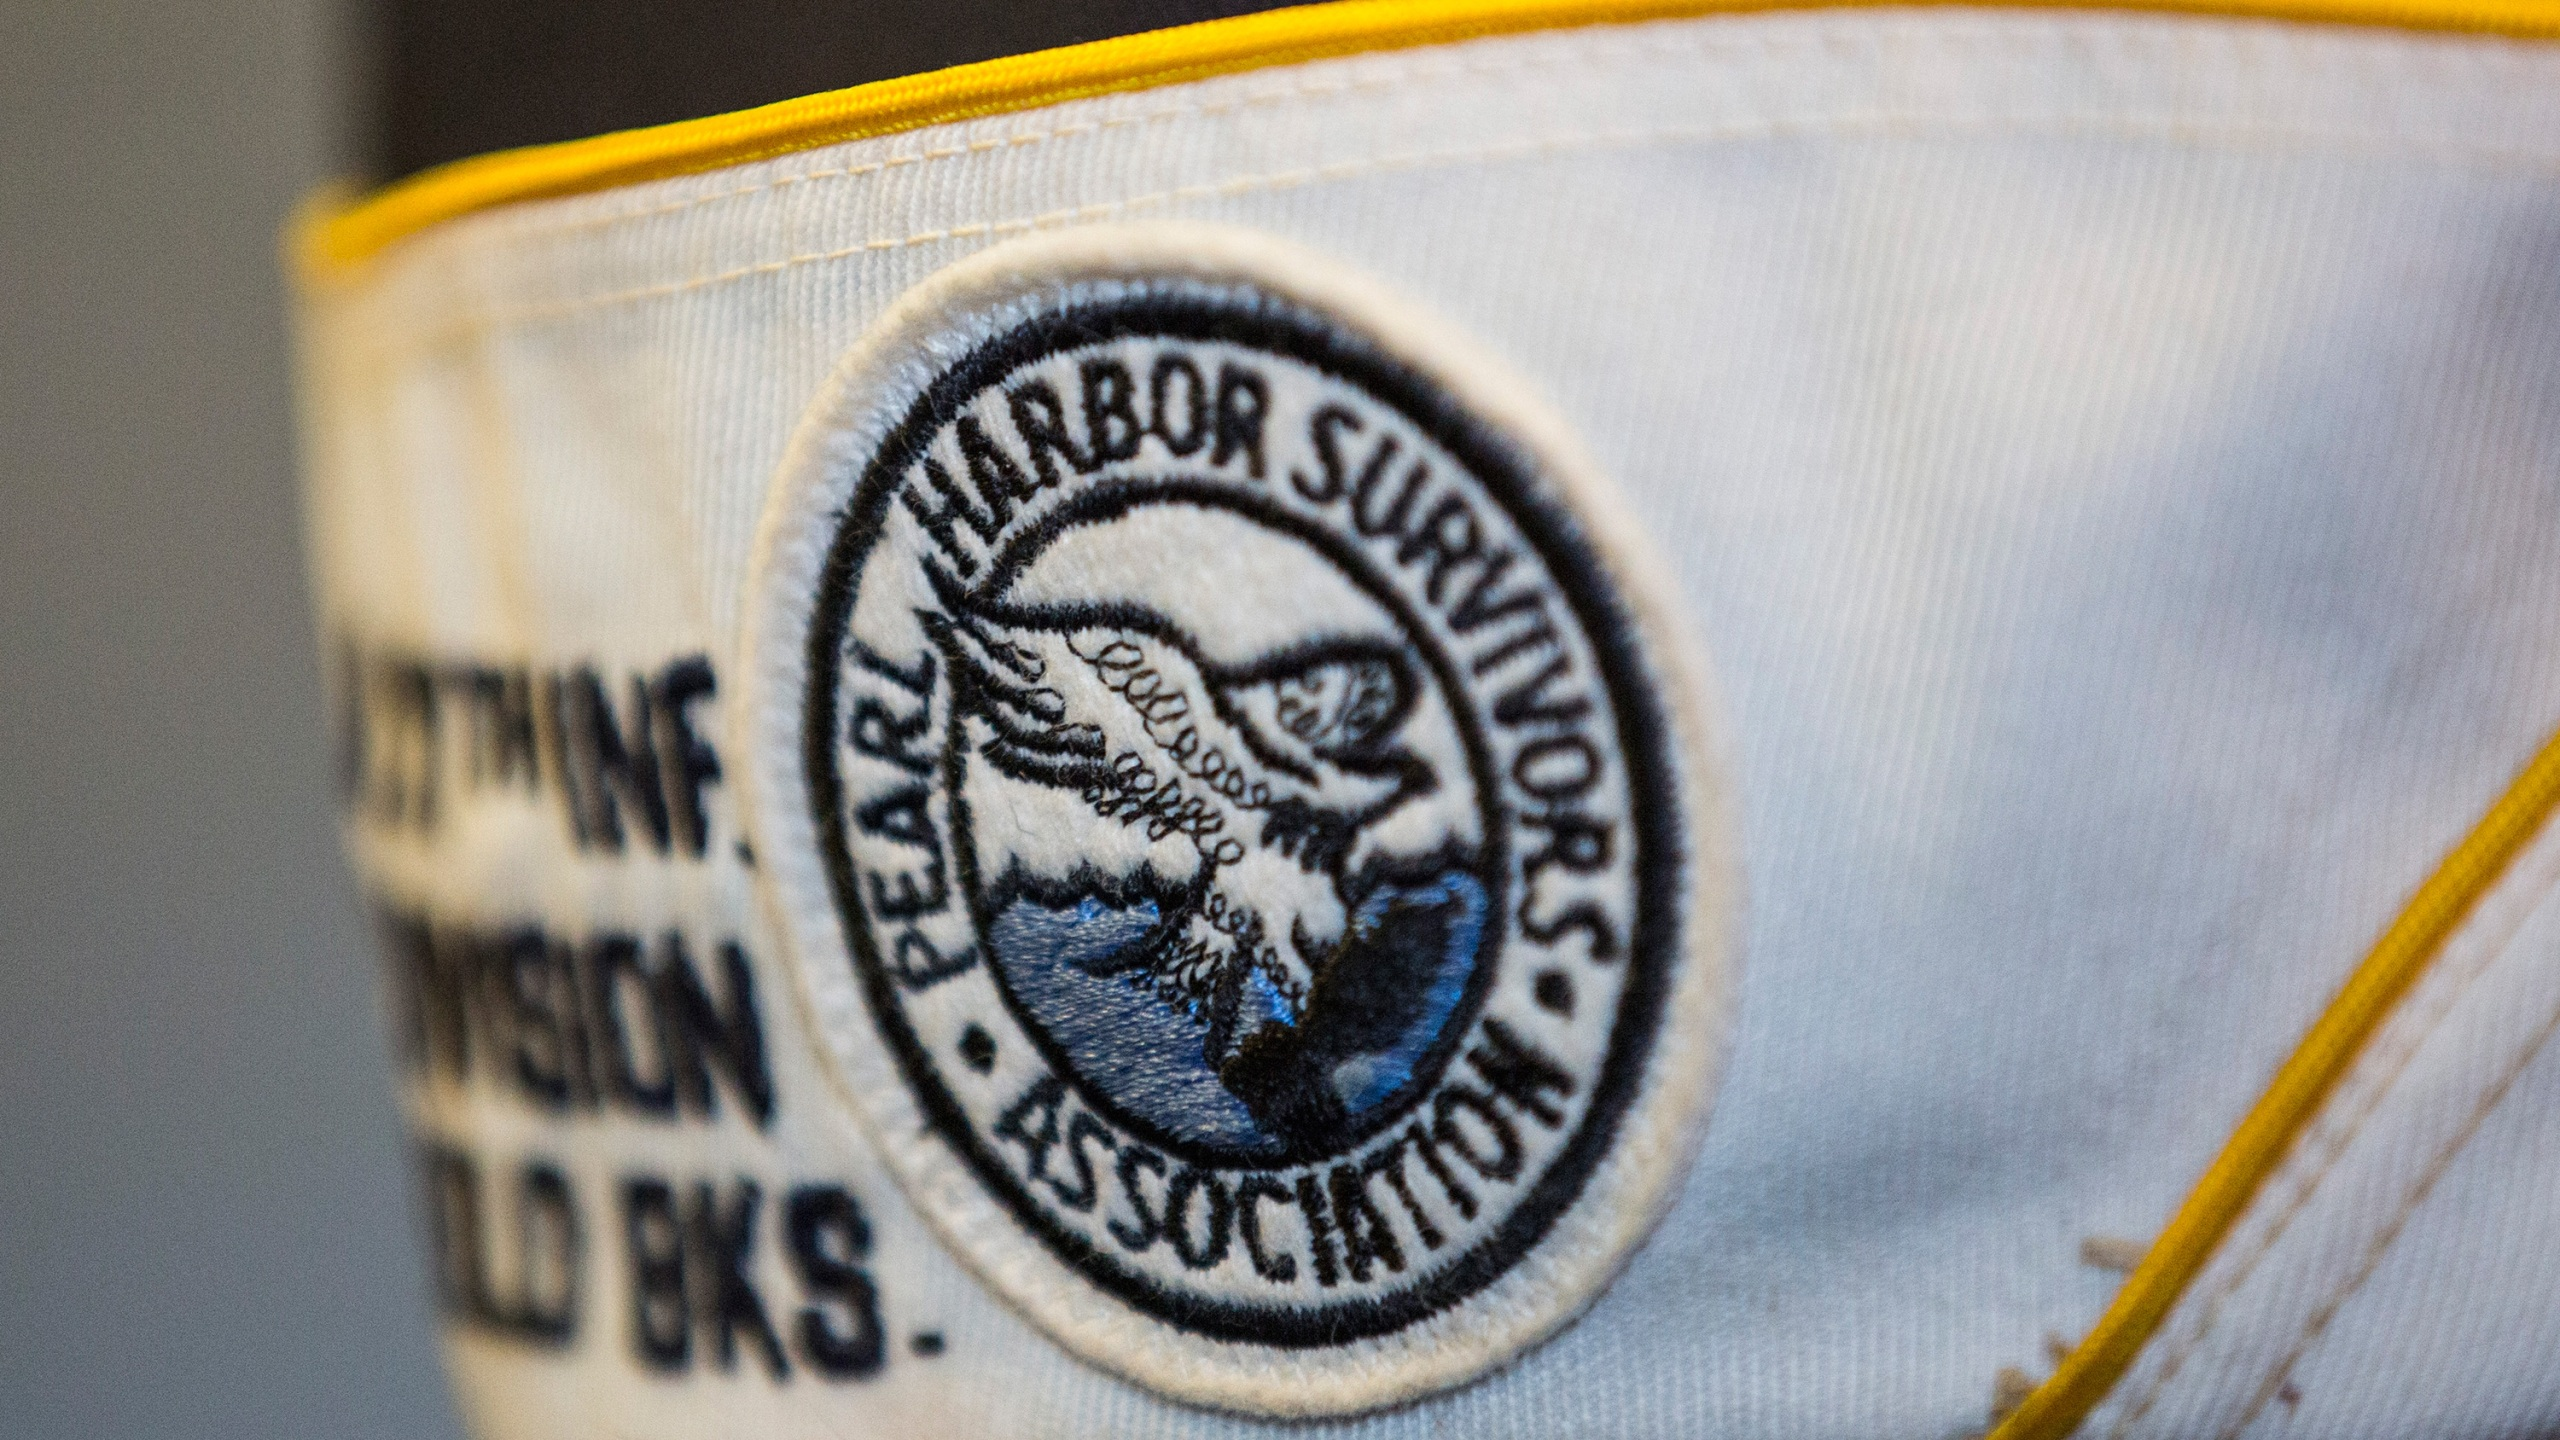 Detail of the hat of a survivor of the attack on Pearl Harbor as he attends a ceremony marking the anniversary of the attack on the Intrepid Sea, Air and Space Museum on December 7, 2015 in New York City. (Andrew Burton/Getty Images)